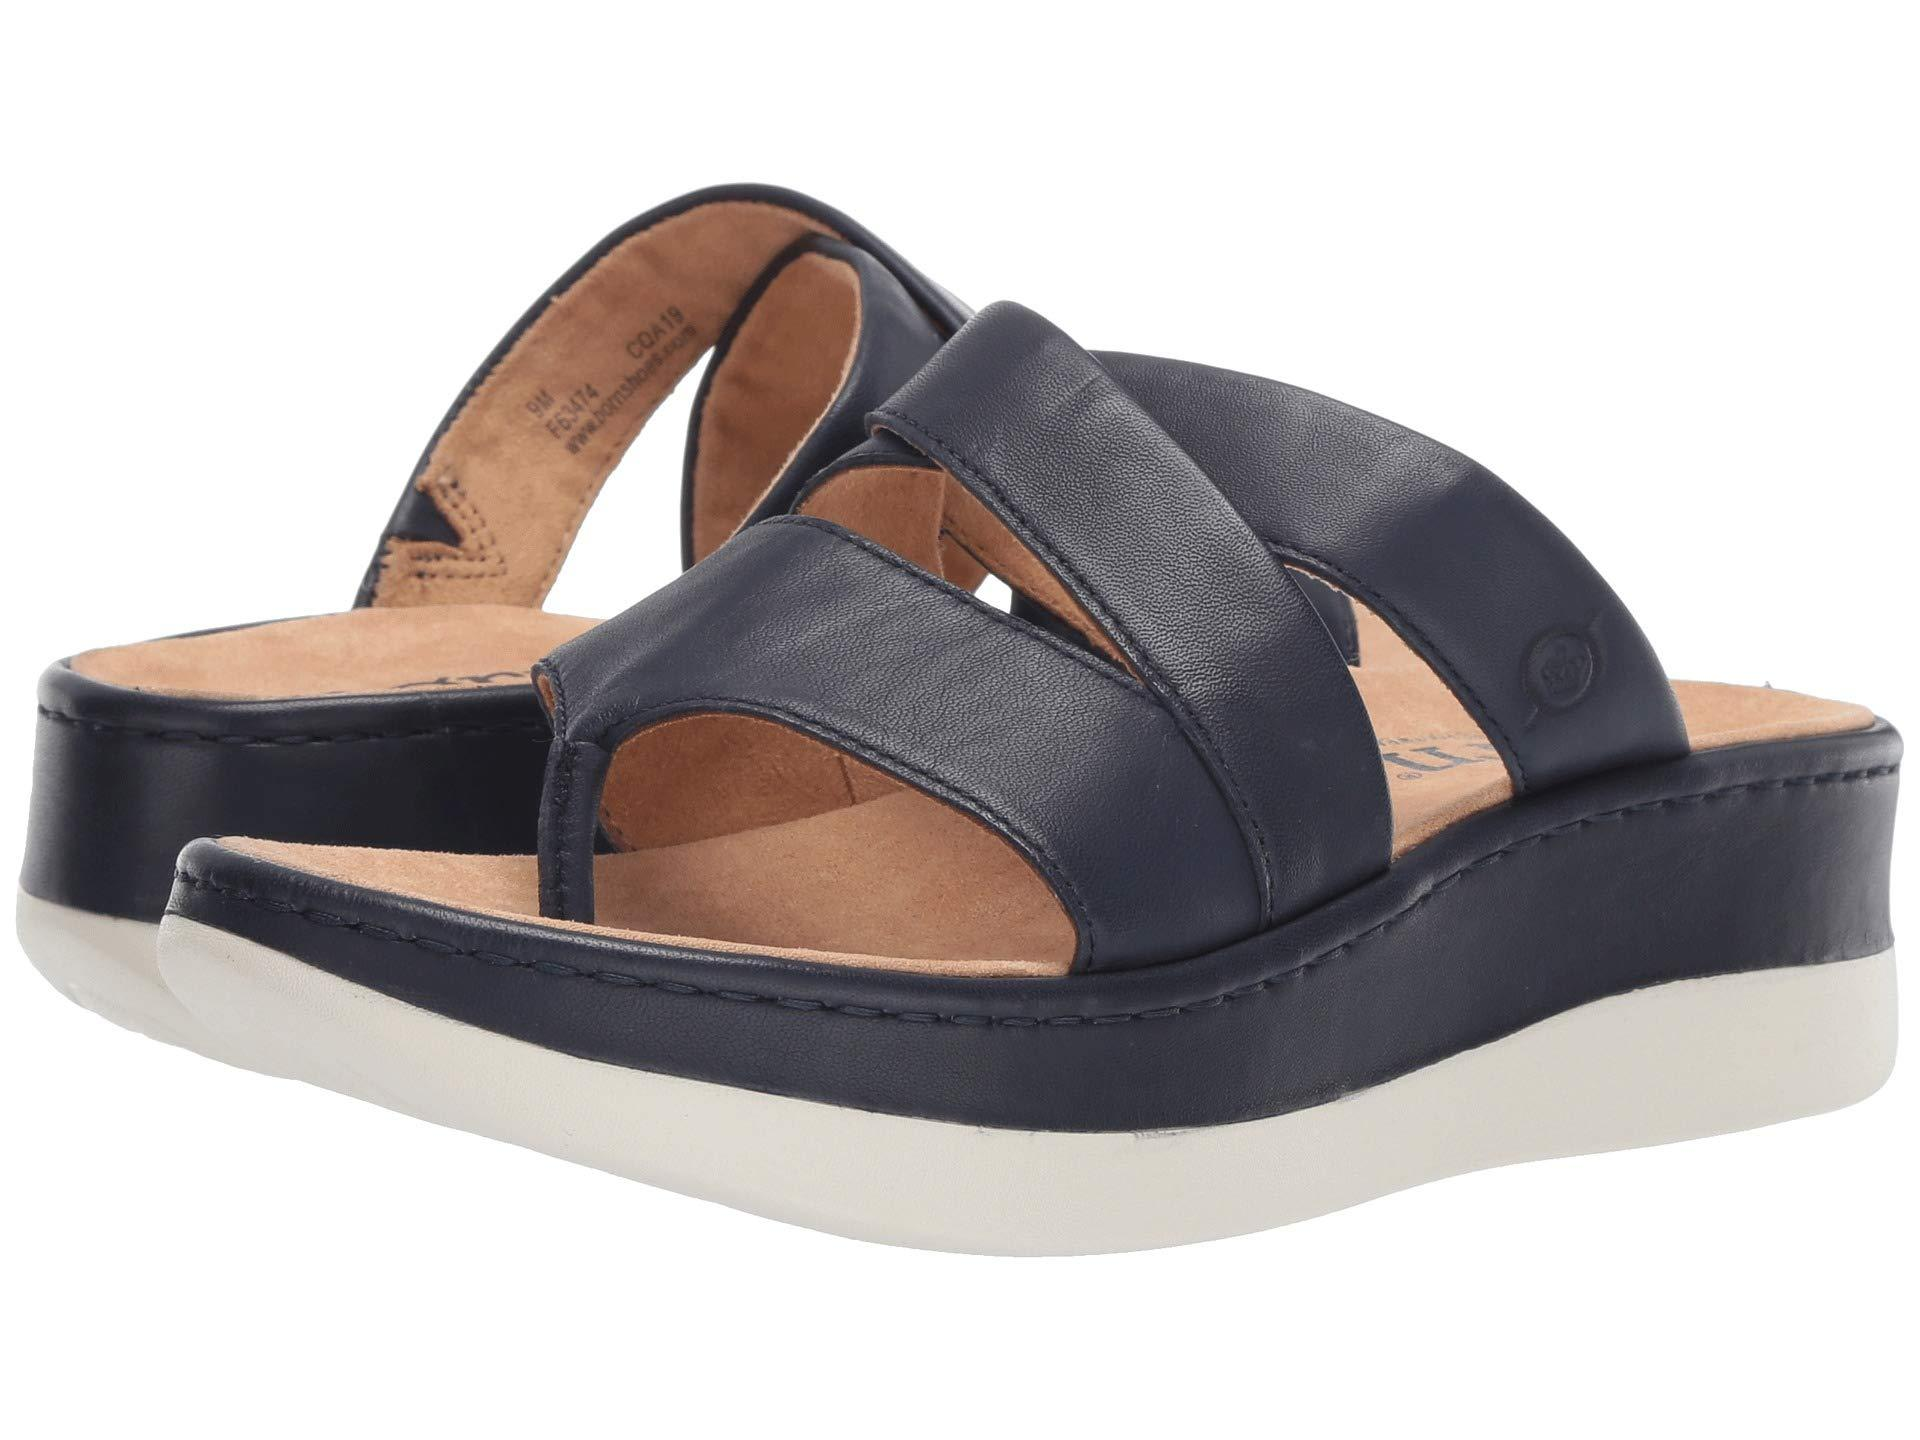 af1174d686a9 Lyst - Born Uinta (brown) Women s Sandals in Blue